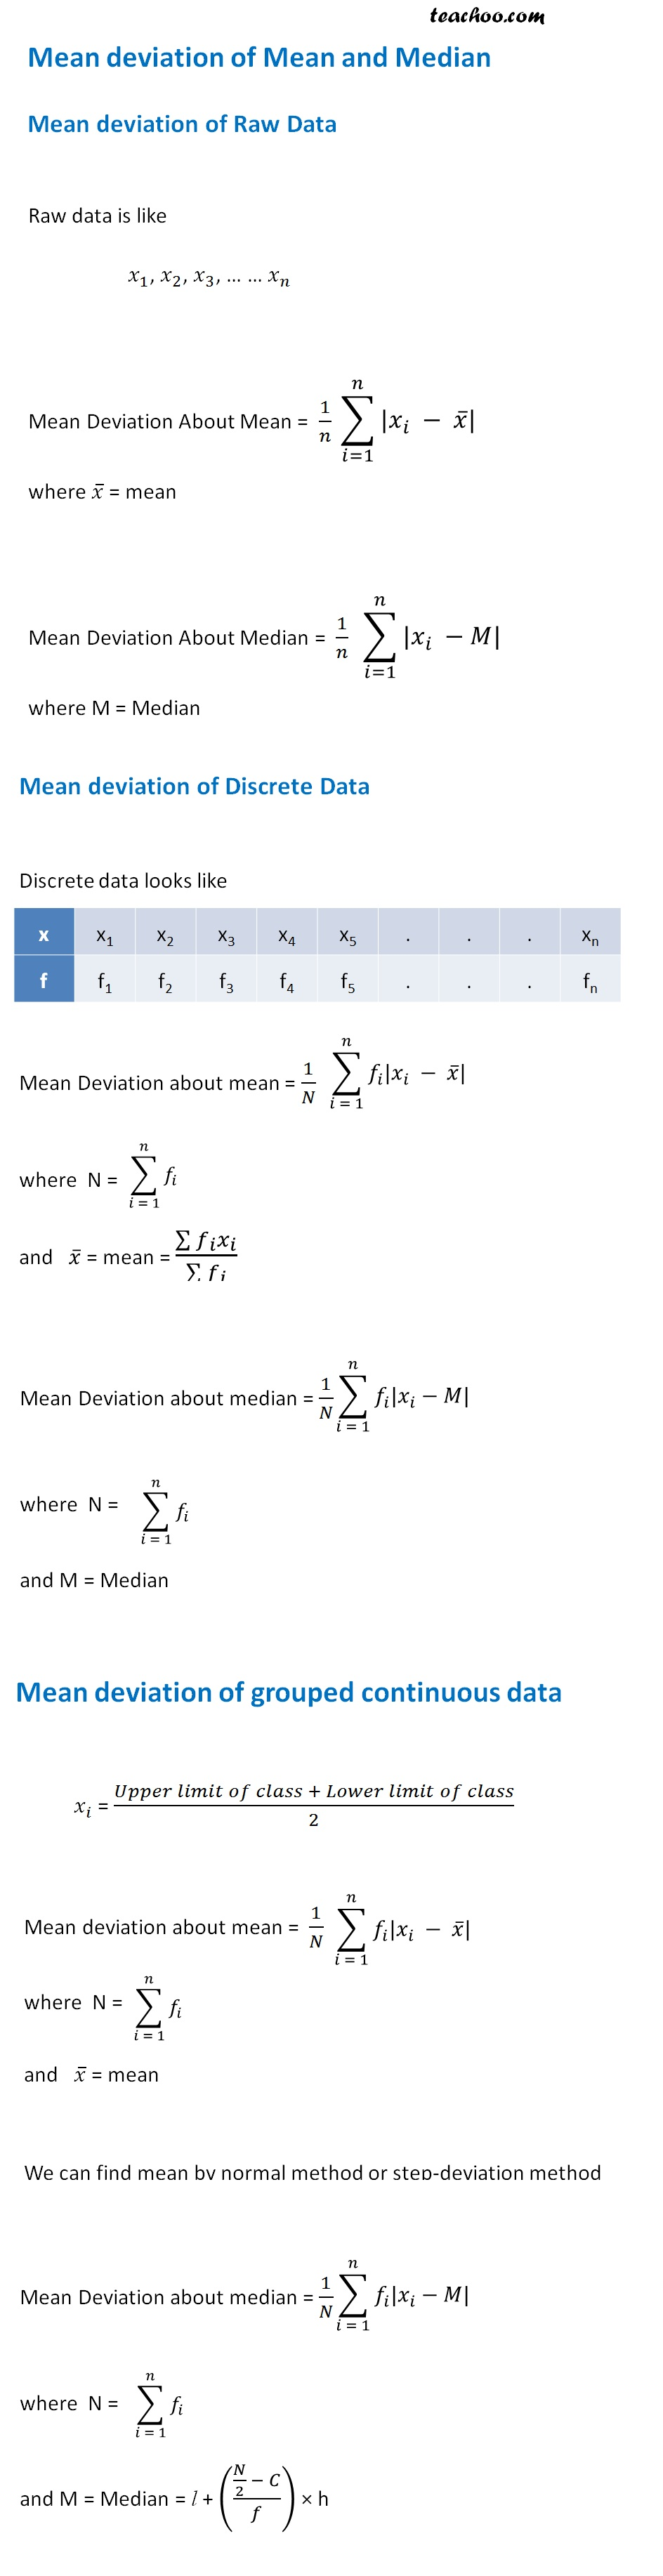 Mean deviation about Mean and Median.jpg